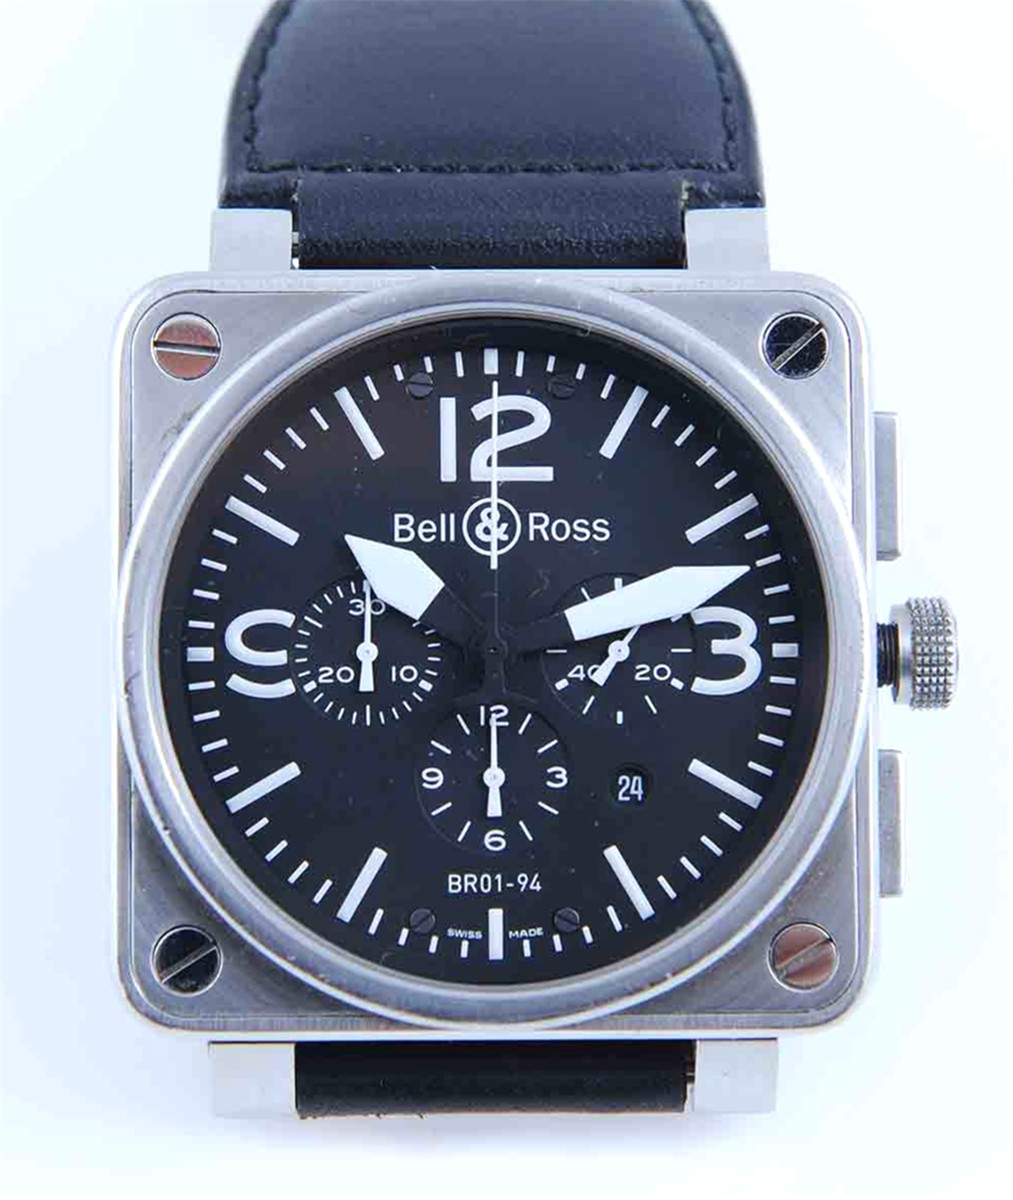 Bell & Ross 46mm Chronograph Model: BR01-94-S-01429